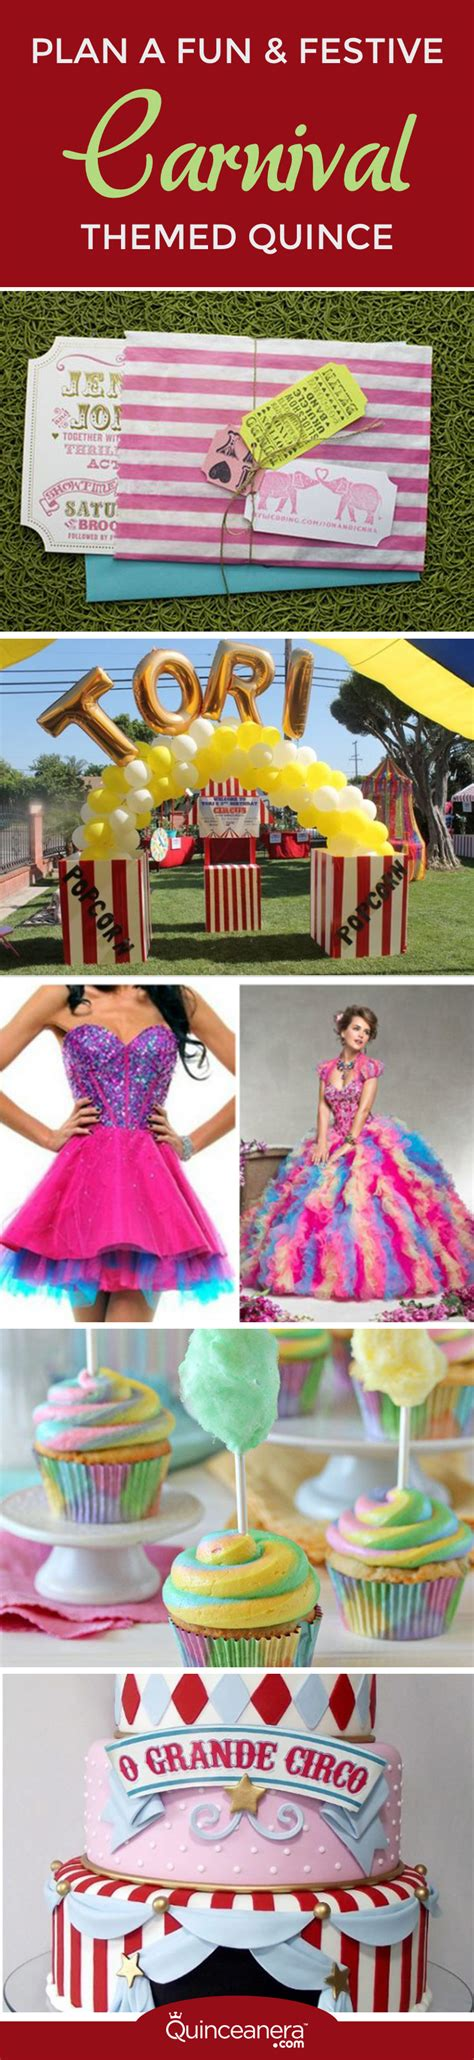 wordpress themes carnival plan a fun festive carnival themed quince quinceanera